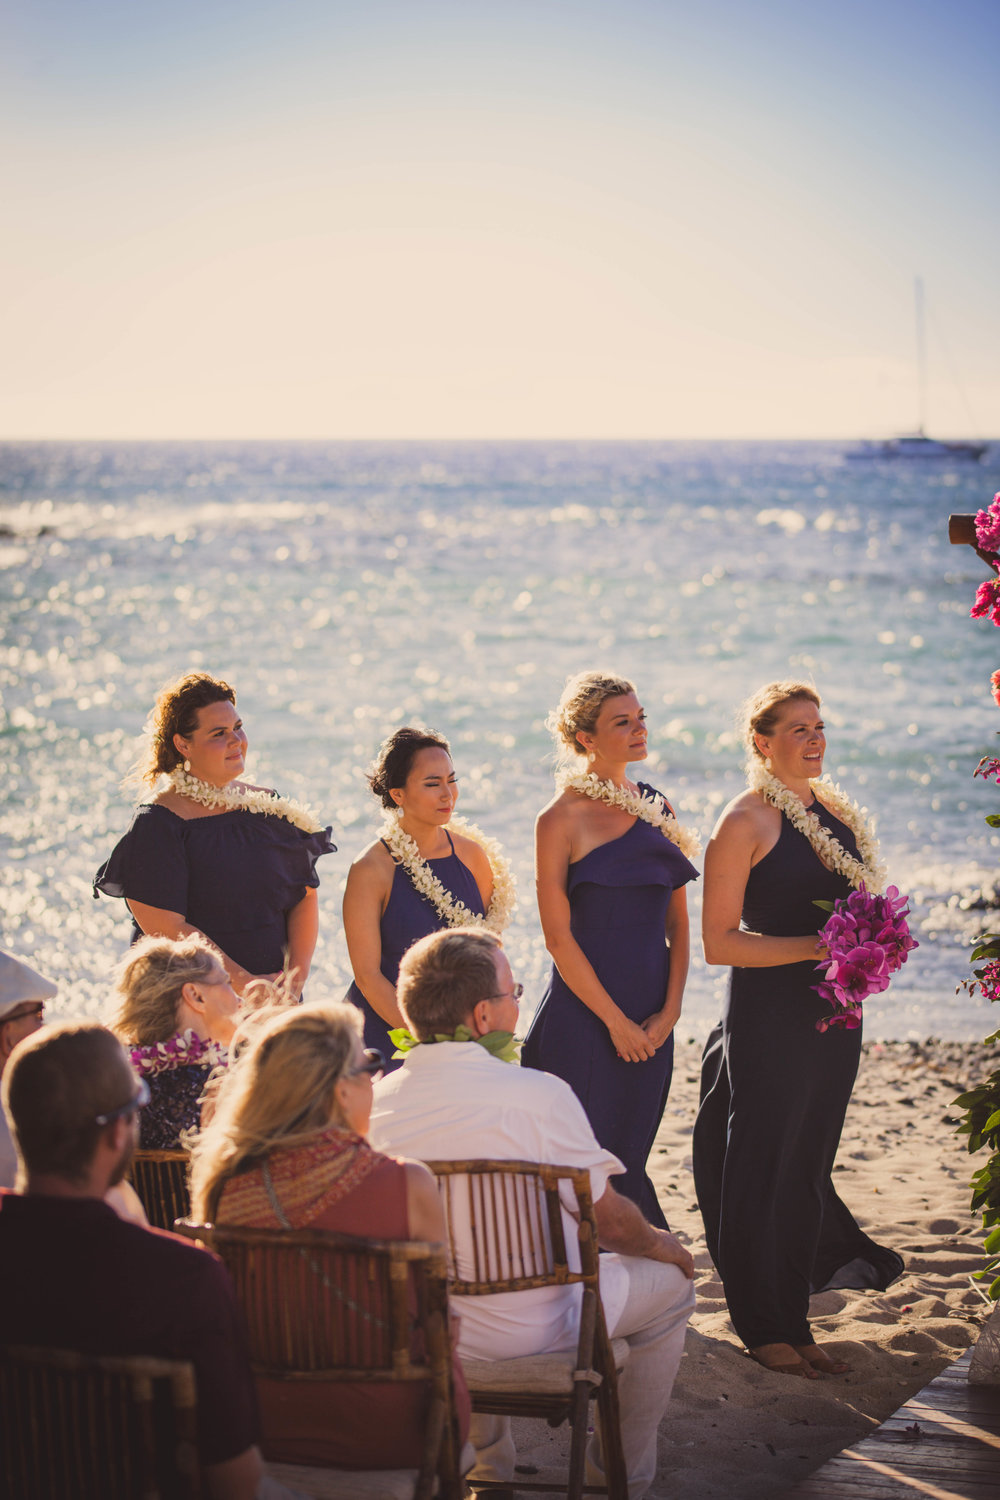 big island hawaii fairmont orchid beach wedding © kelilina photography 20170812174433-1.jpg